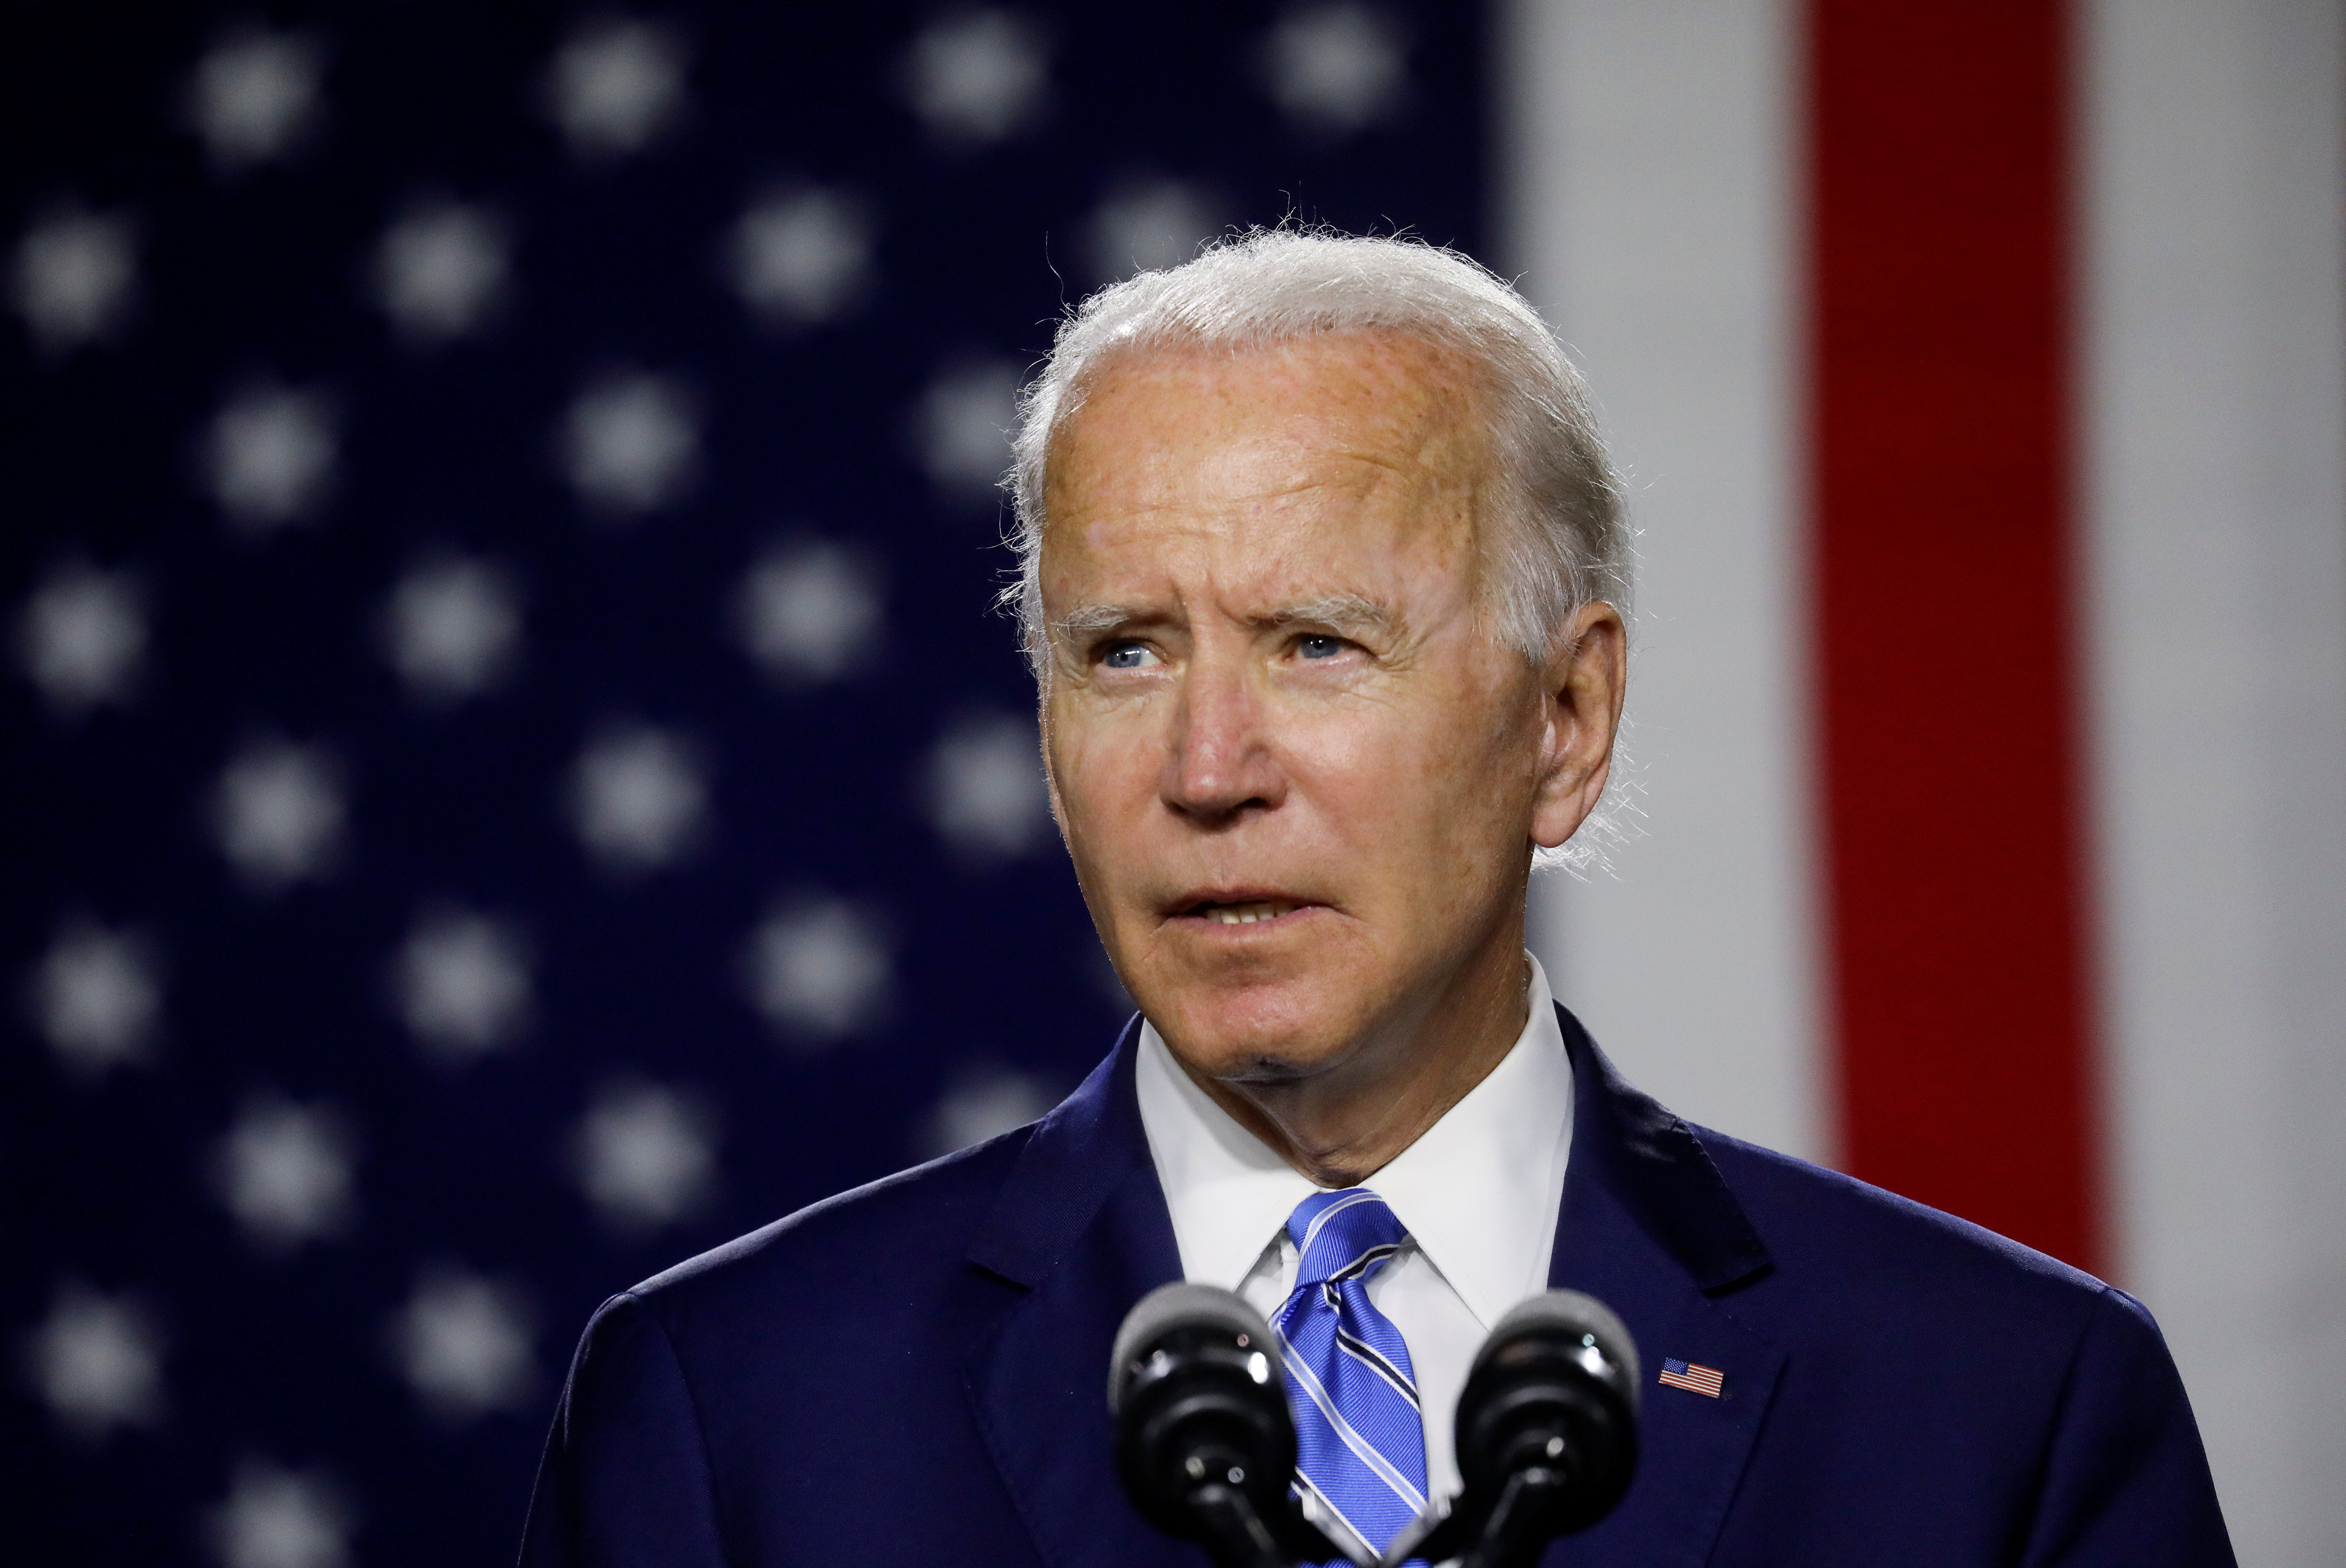 Democratic U.S. presidential candidate and former Vice President Joe Biden arrives to speak about modernizing infrastructure and his plans for tackling climate change during a campaign event in Wilmington, Delaware, U.S., July 14, 2020. REUTERS/Leah Millis